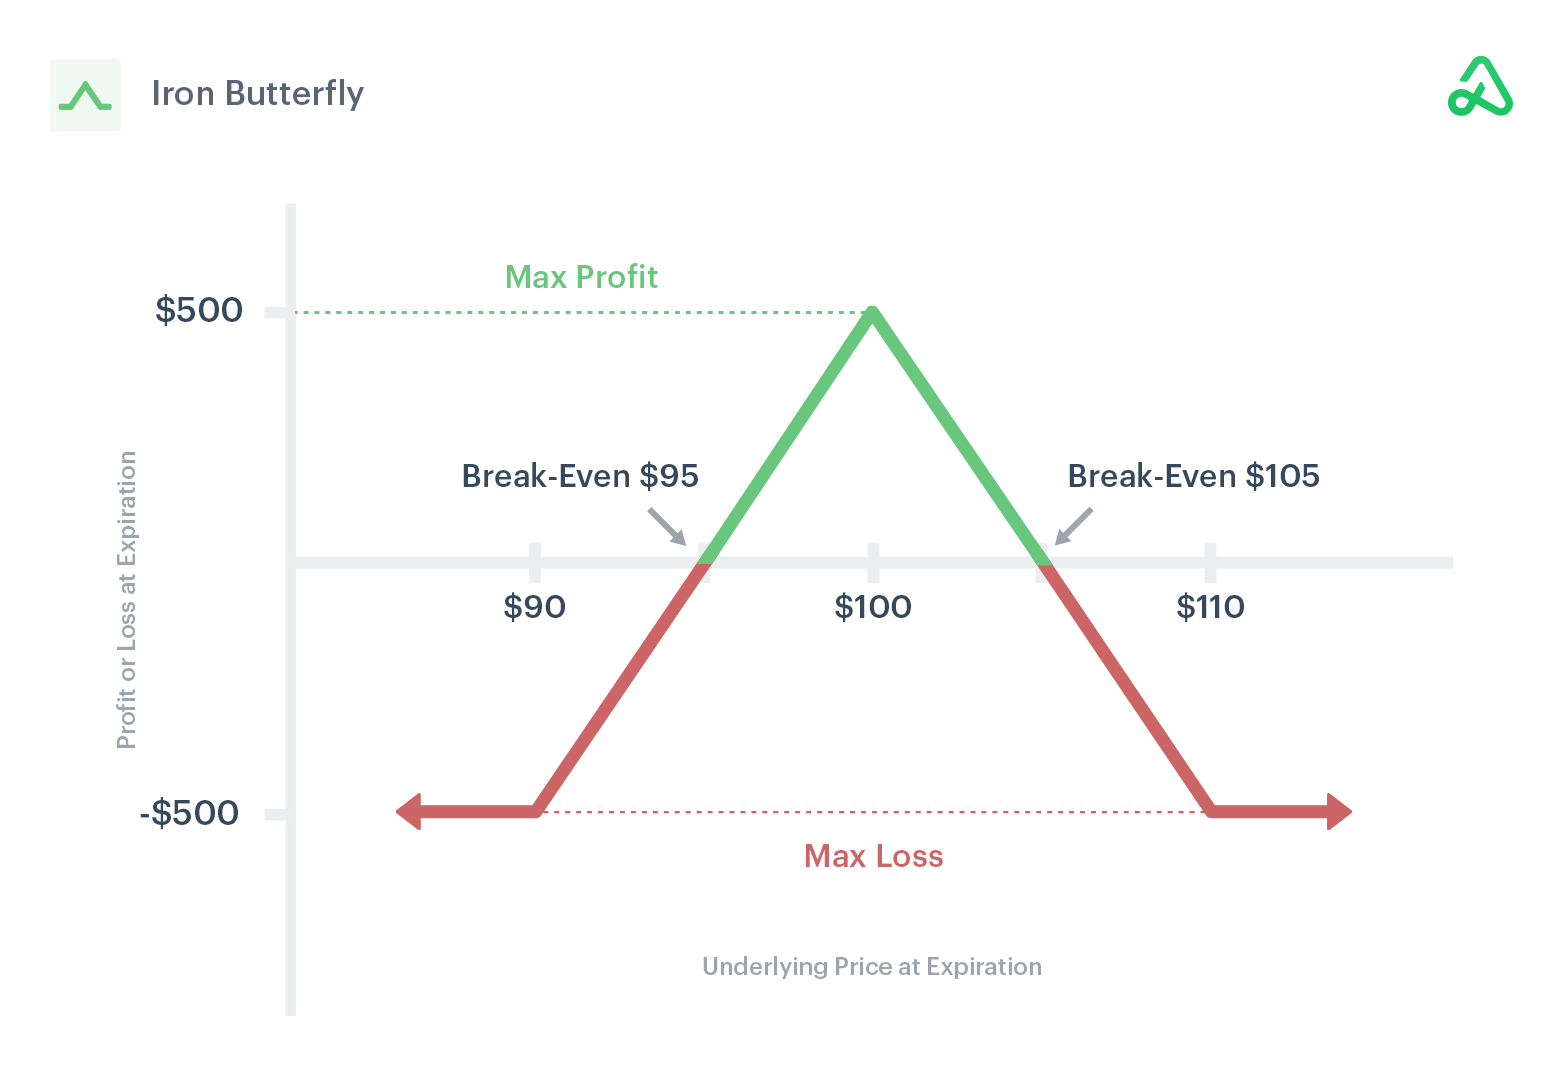 Image of iron butterfly payoff diagram showing max profit, max loss, and break-even points